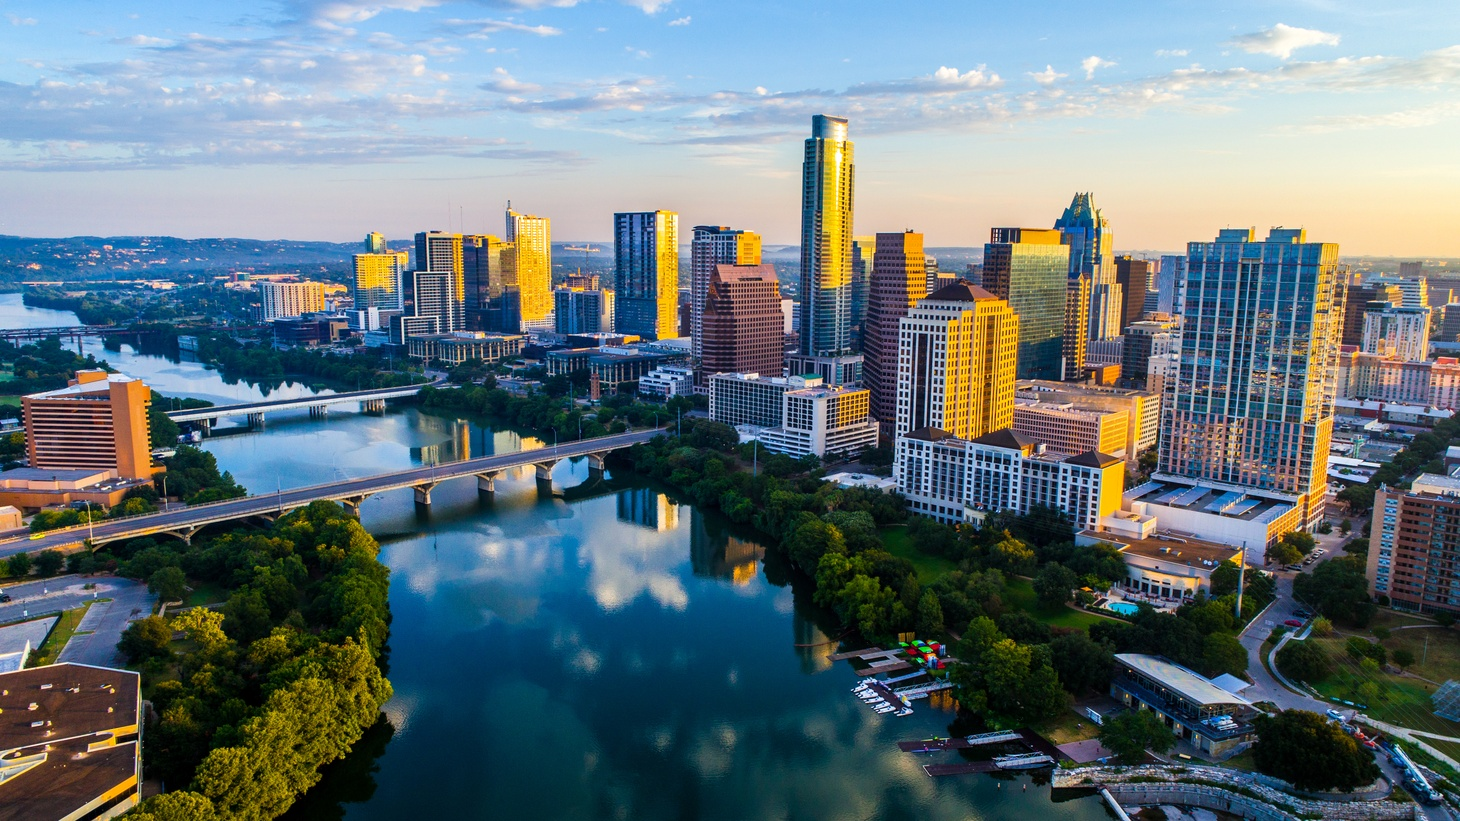 In May 2021, the median sale price in the Austin metro area hit an all-time high of $465,000, according to the Austin Board of Realtors. Credit.